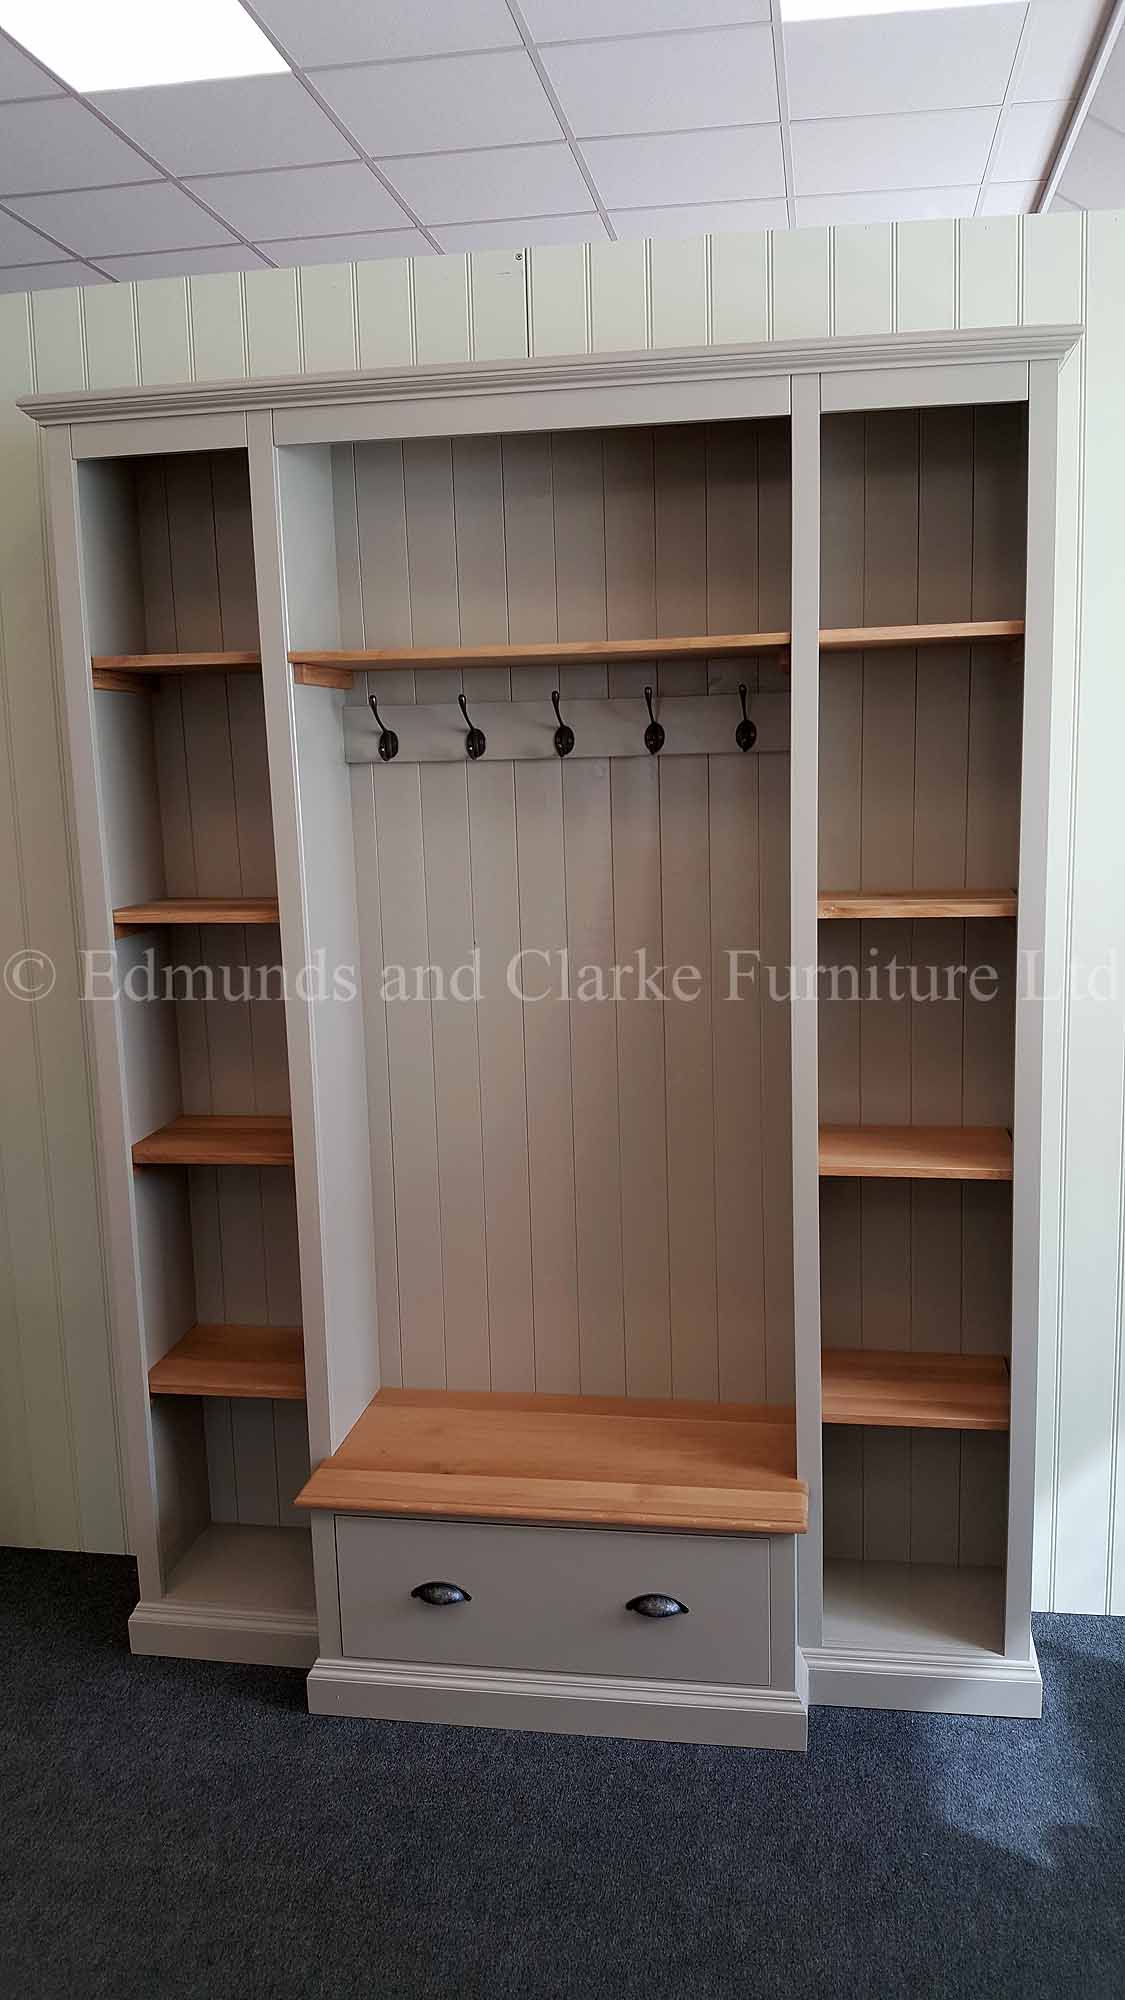 Bespoke made to measure hallway storage